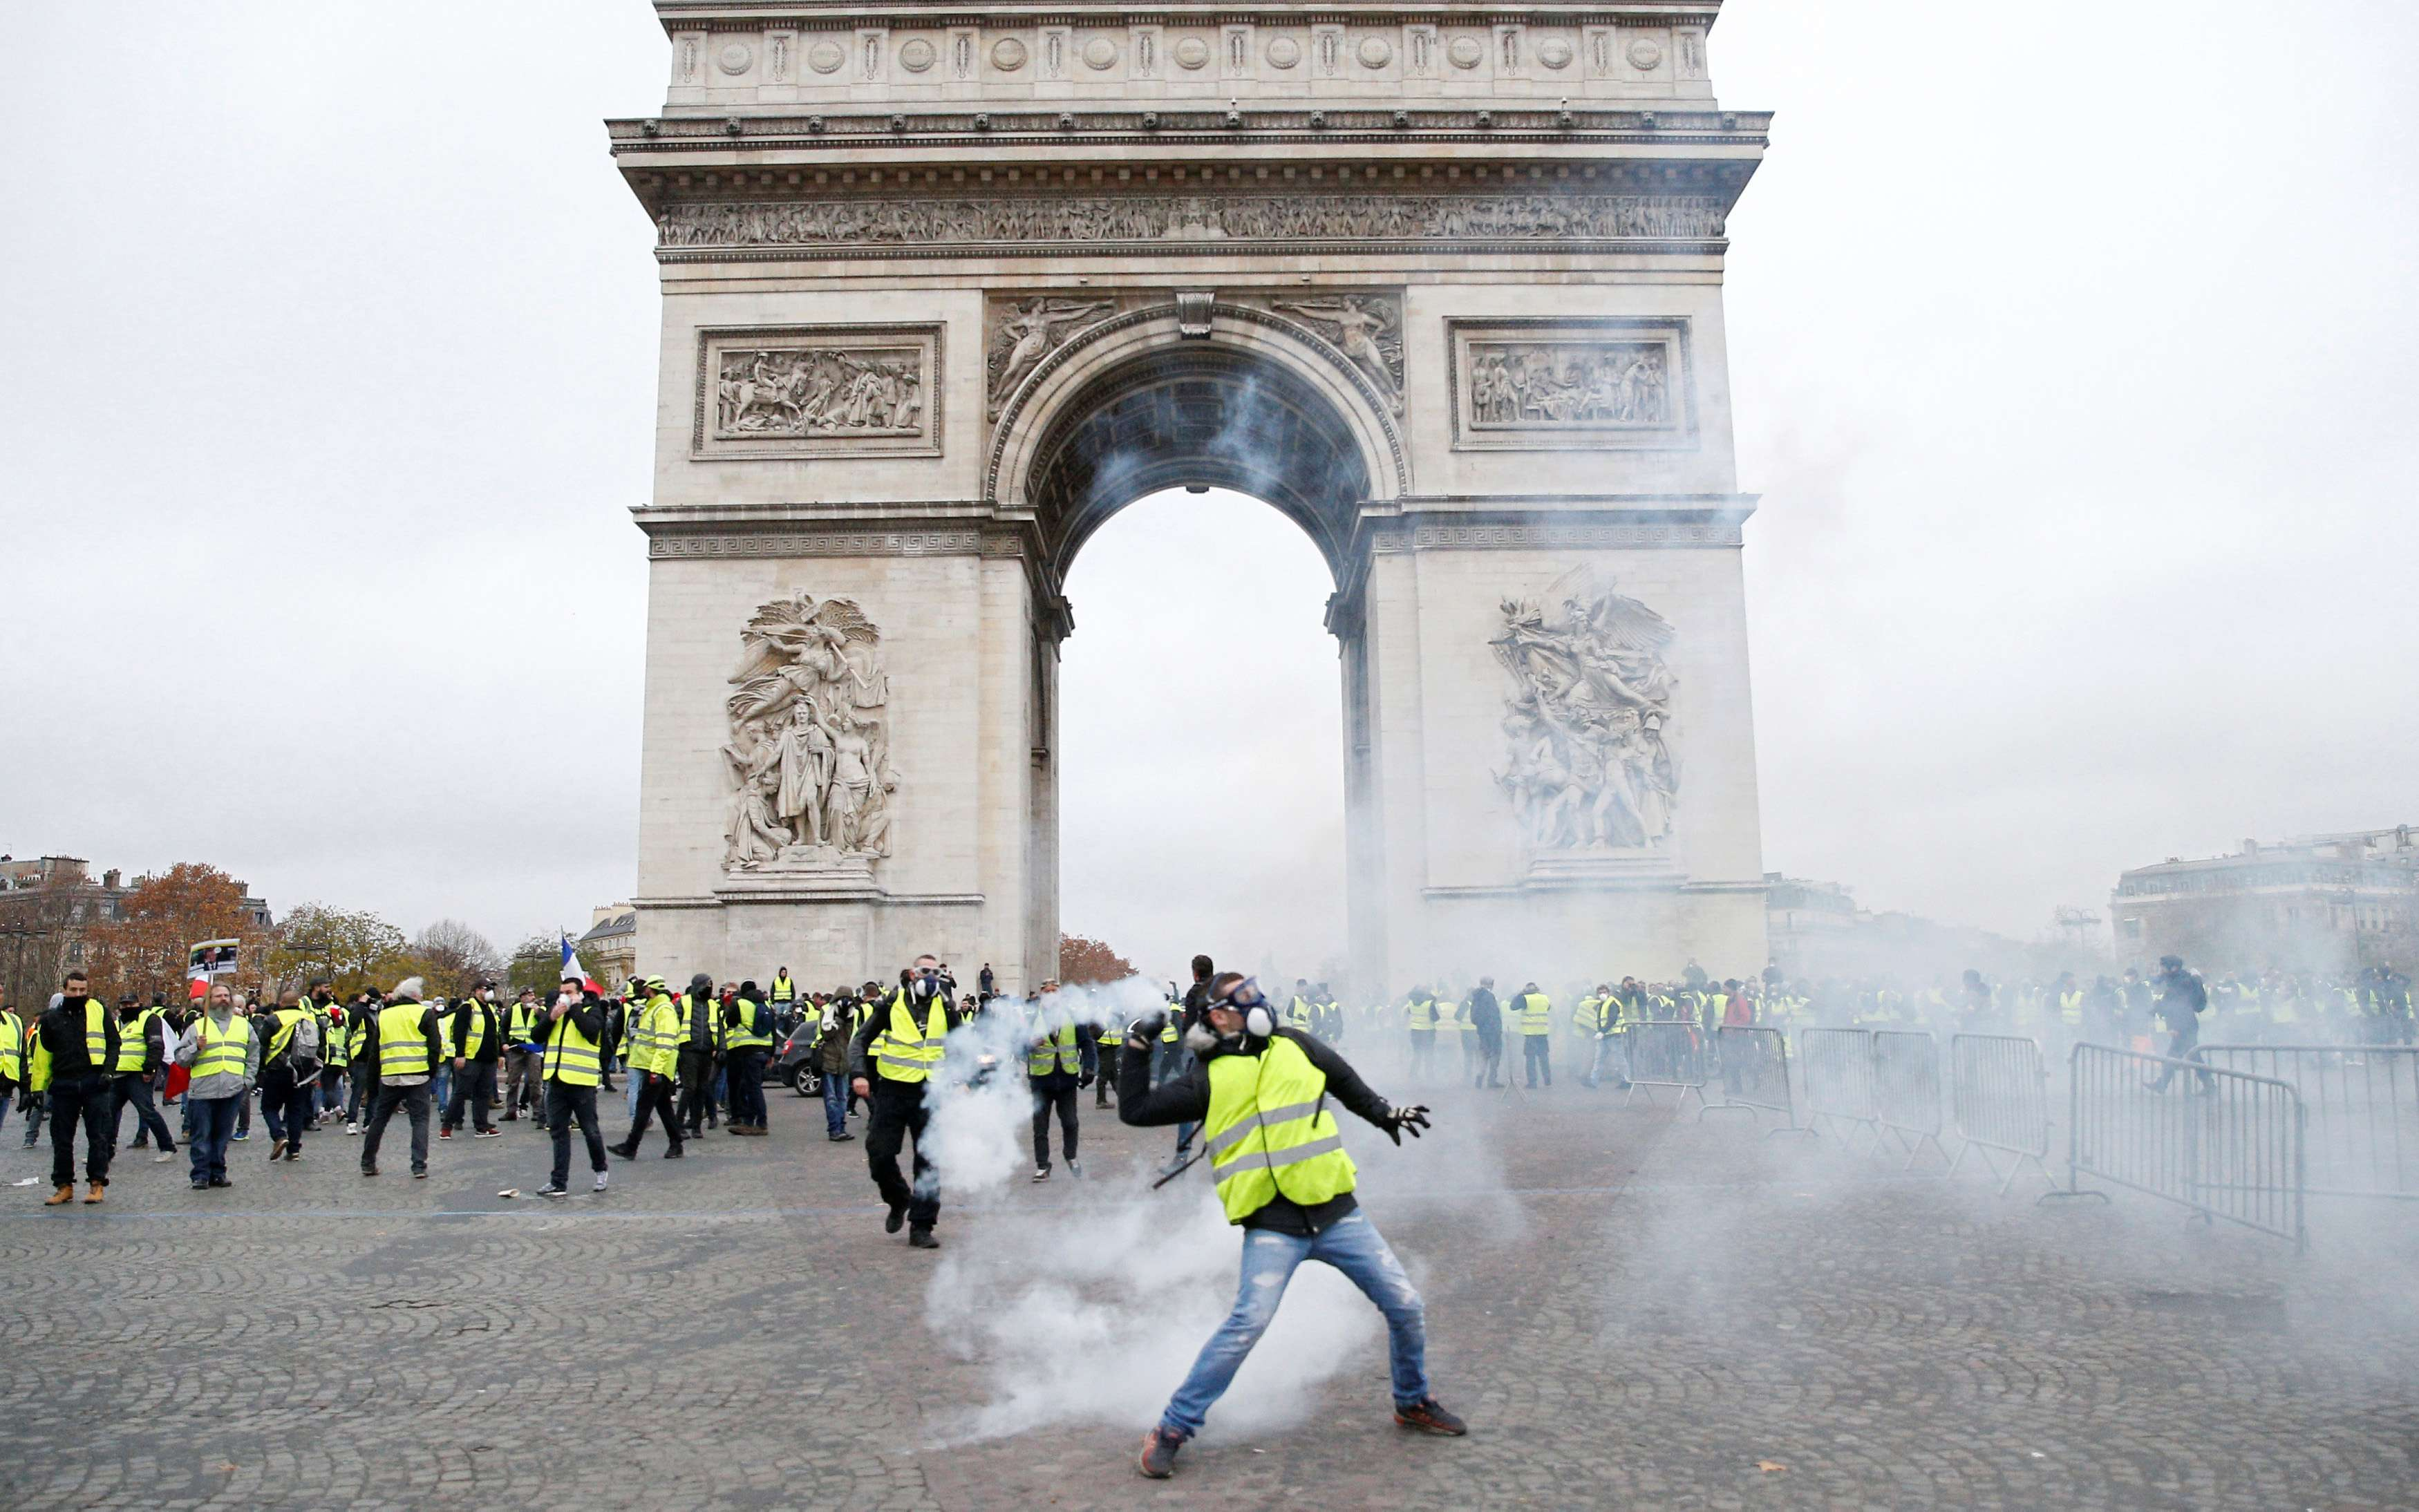 Tear gas floats in the air near the Arc de Triomphe as protesters wearing yellow vests, a symbol of a French drivers' protest against higher diesel taxes, demonstrate in Paris, France, December 1, 2018. REUTERS/Stephane Mahe